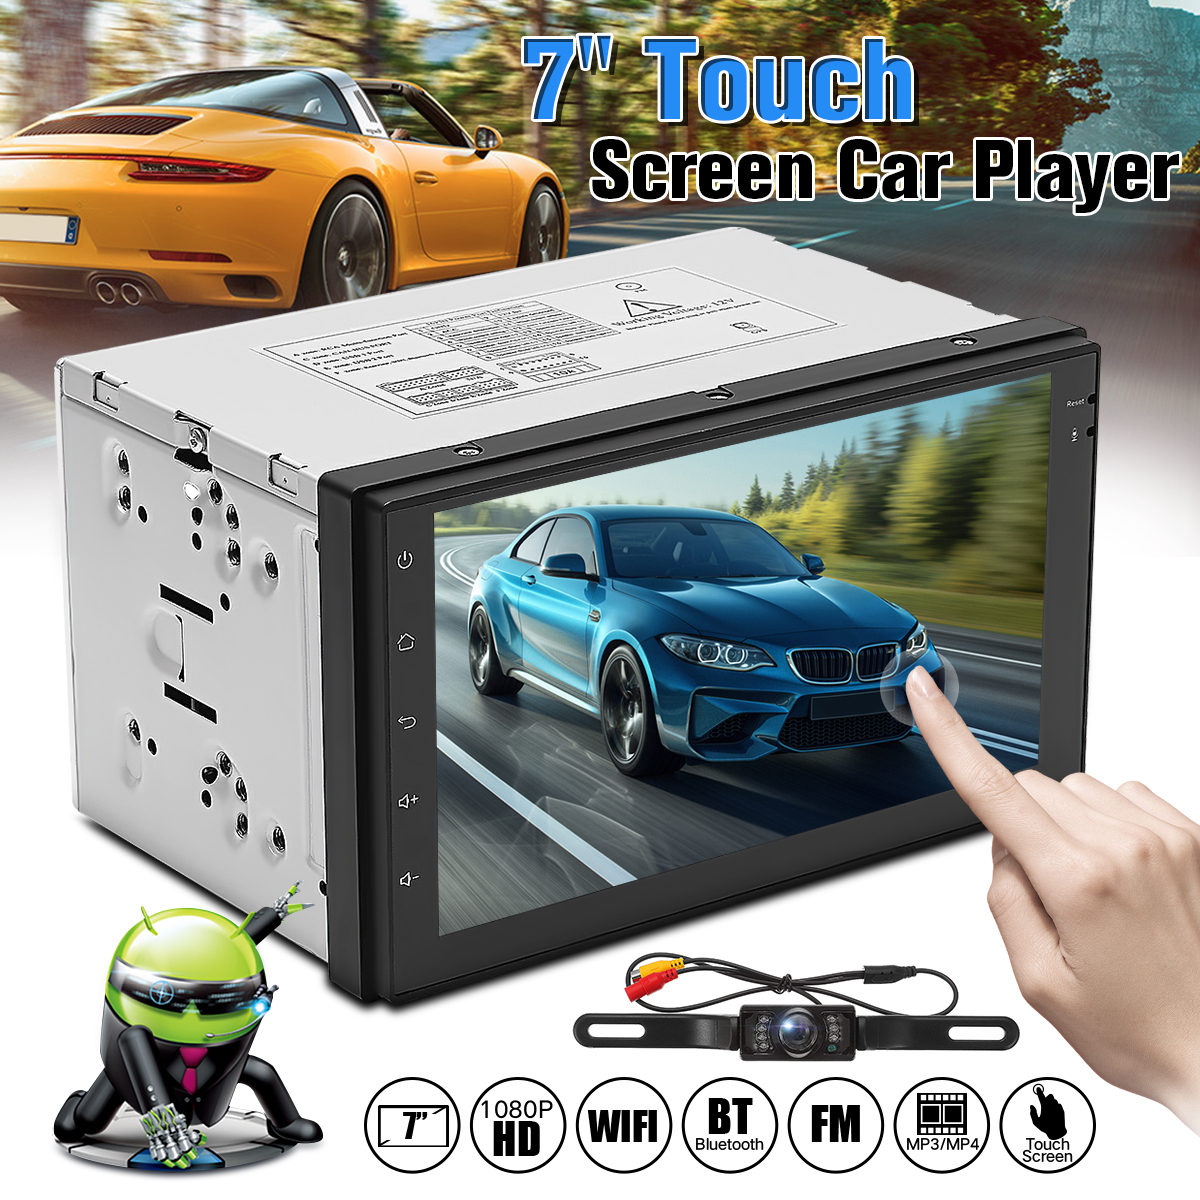 7 inch 2 Din Android 6.0 Car MP5 Player Auto Stereo DVD FM Radio Wifi GPS Navigation 4Core Blurtooth Autoradio +Rear View Camera 7020g 2 din 7 inch car mp5 player bluetooth hd touch screen with gps navigation rear view camera auto fm radio autoradio ios